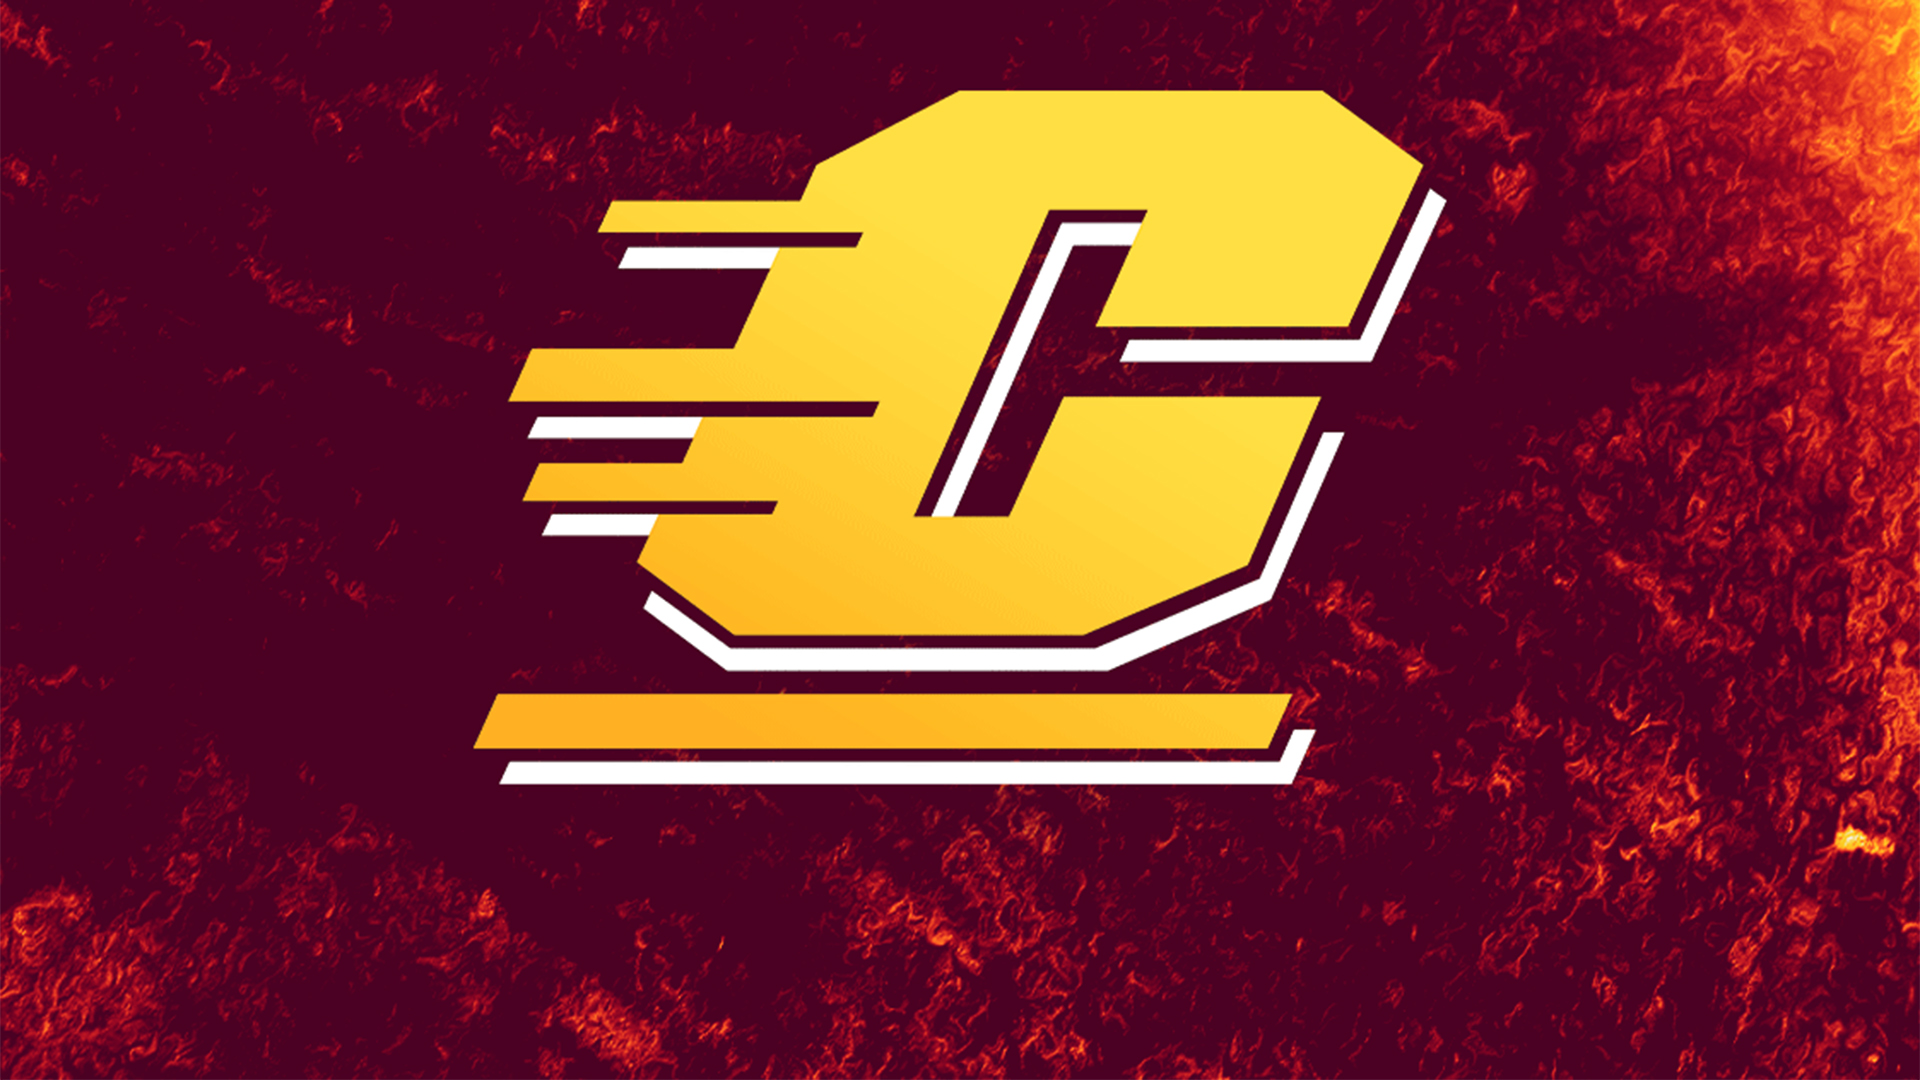 Cmu Academic Calendar.Another Strong Semester For Cmu Student Athletes Central Michigan